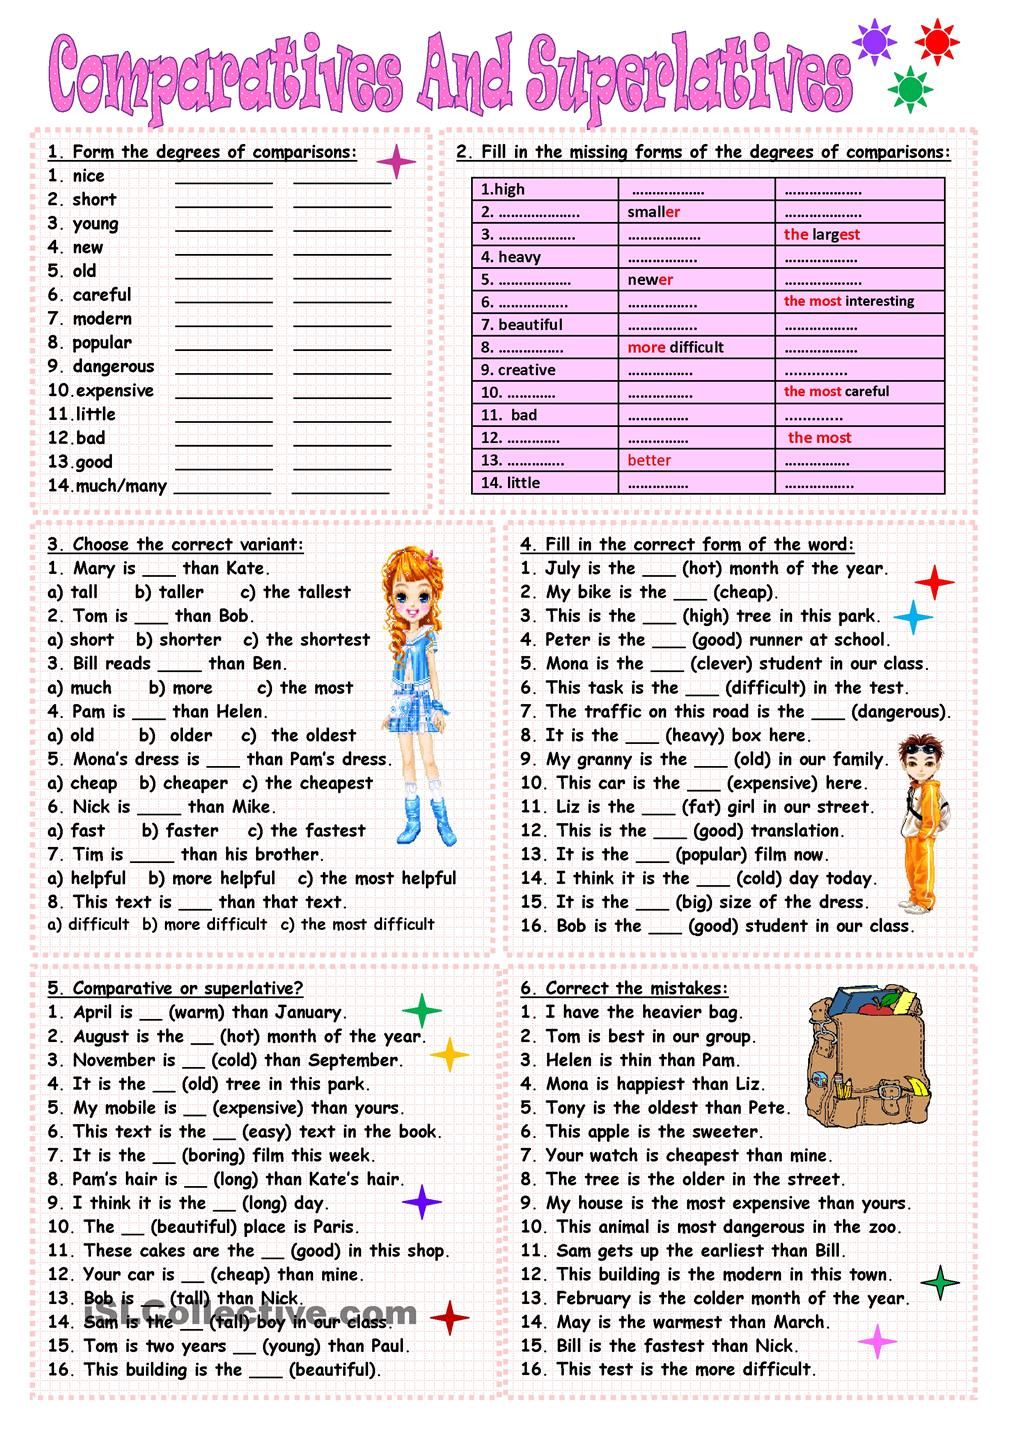 worksheet Degrees Of Comparison Adjectives Worksheet comparatives and superlatives english pinterest great drill skill worksheet to work on using the comparative superlative constructions useful checking understanding of the